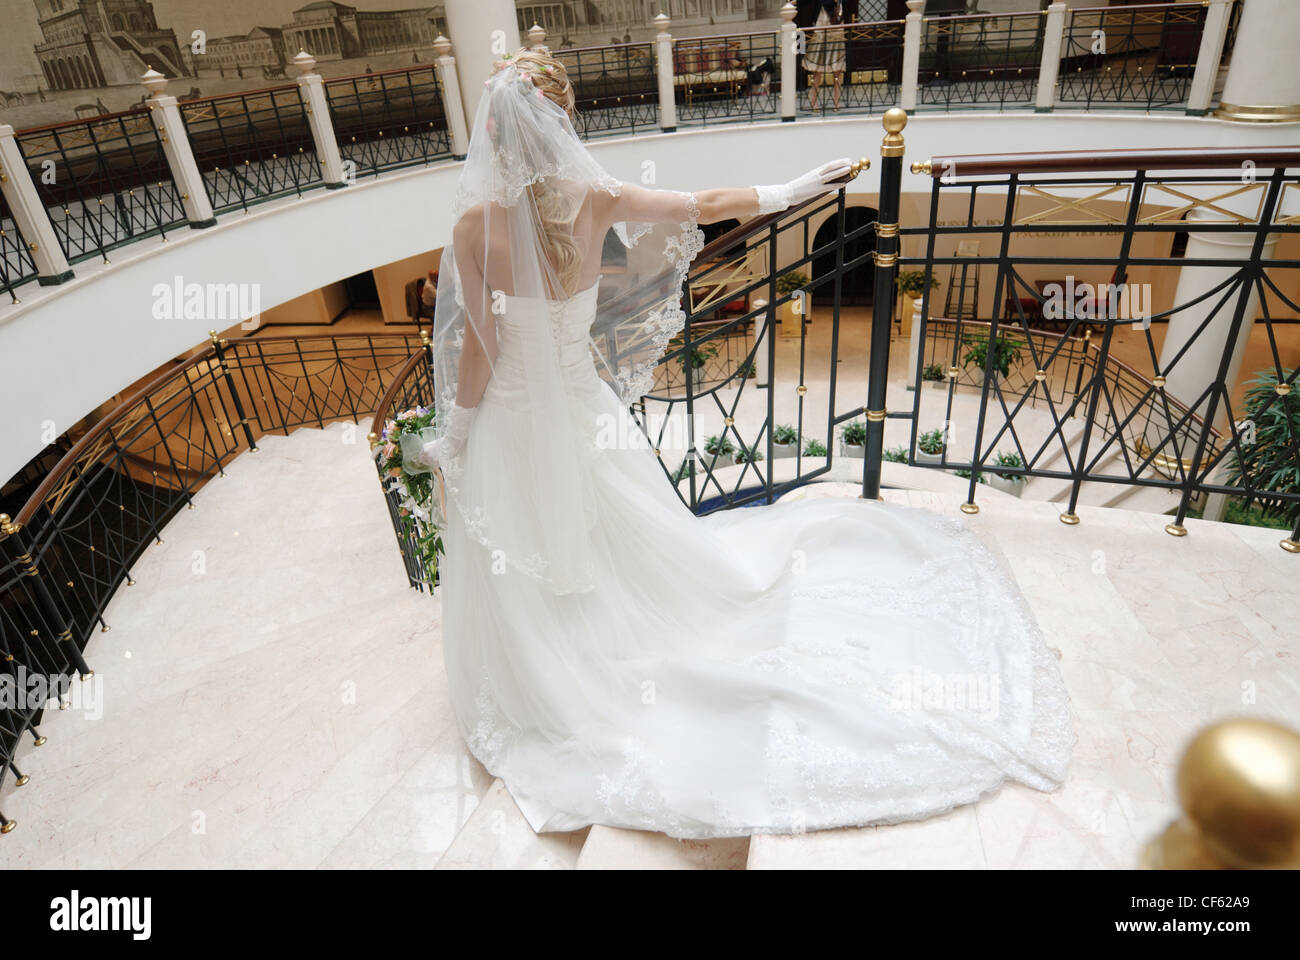 Bride in beautiful wedding dress stands on broad staircase, rear view. - Stock Image